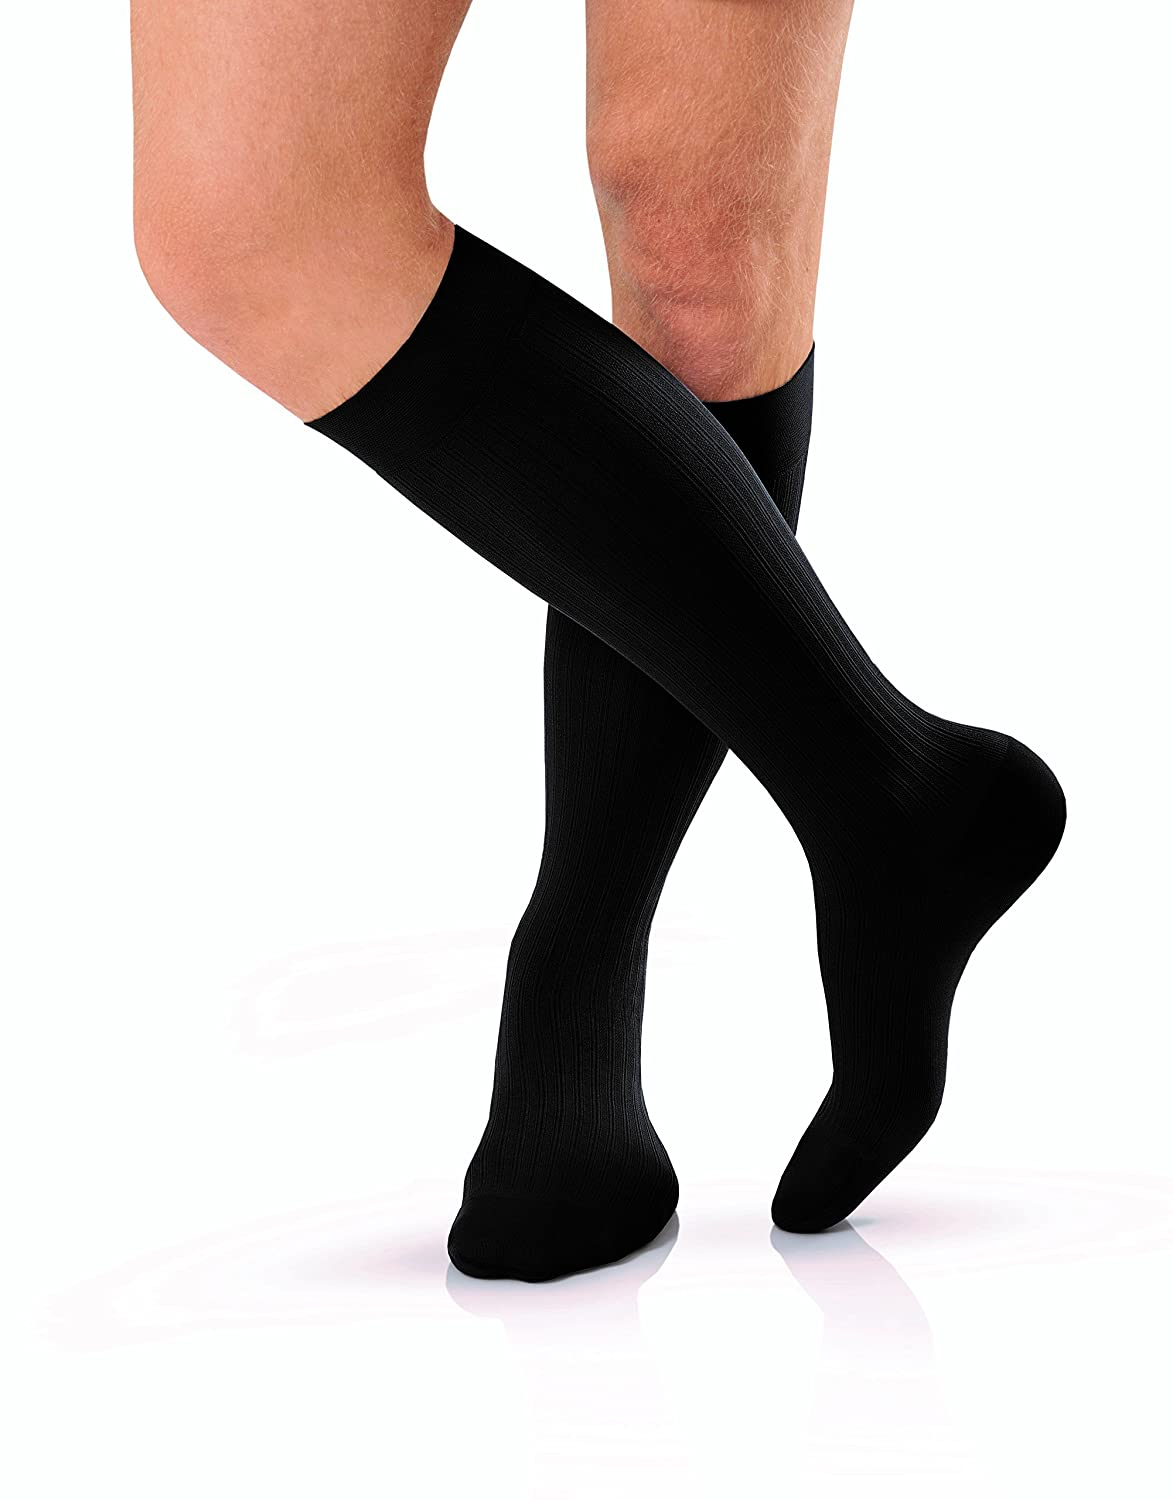 BI115091 - Bsn Jobst Mens Knee-High Ribbed Compression Socks X-Large, Black by Jobst   B000M7AX44